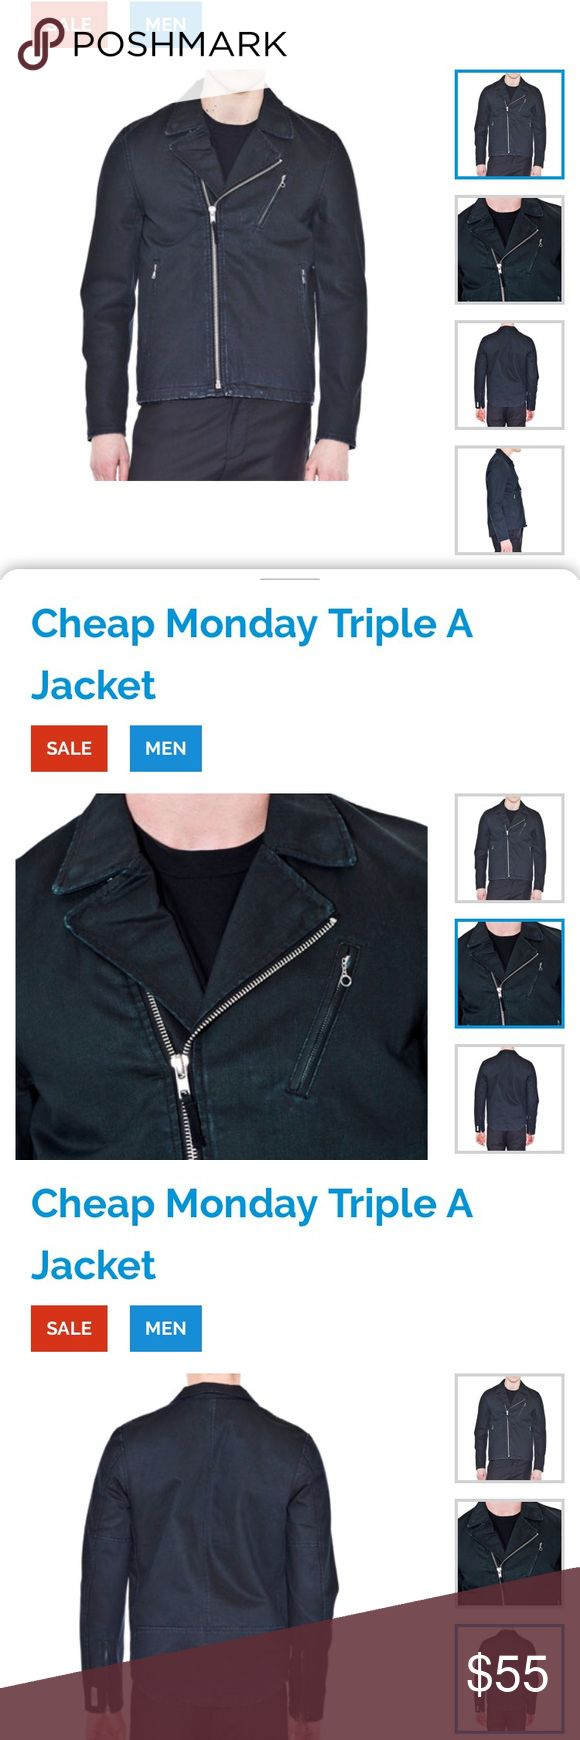 denim black jacket, Cheap  Monday Triple A Jacket New men's denim black jacket, brand Cheap  Monday Triple A Jacket Black size S  The Triple A by Cheap Monday is a washed denim jacket with soft lining and an inner pocket. The Triple A has two side pockets and a zippered chest pocket. Cheap Monday Jackets & Coats Lightweight & Shirt Jackets